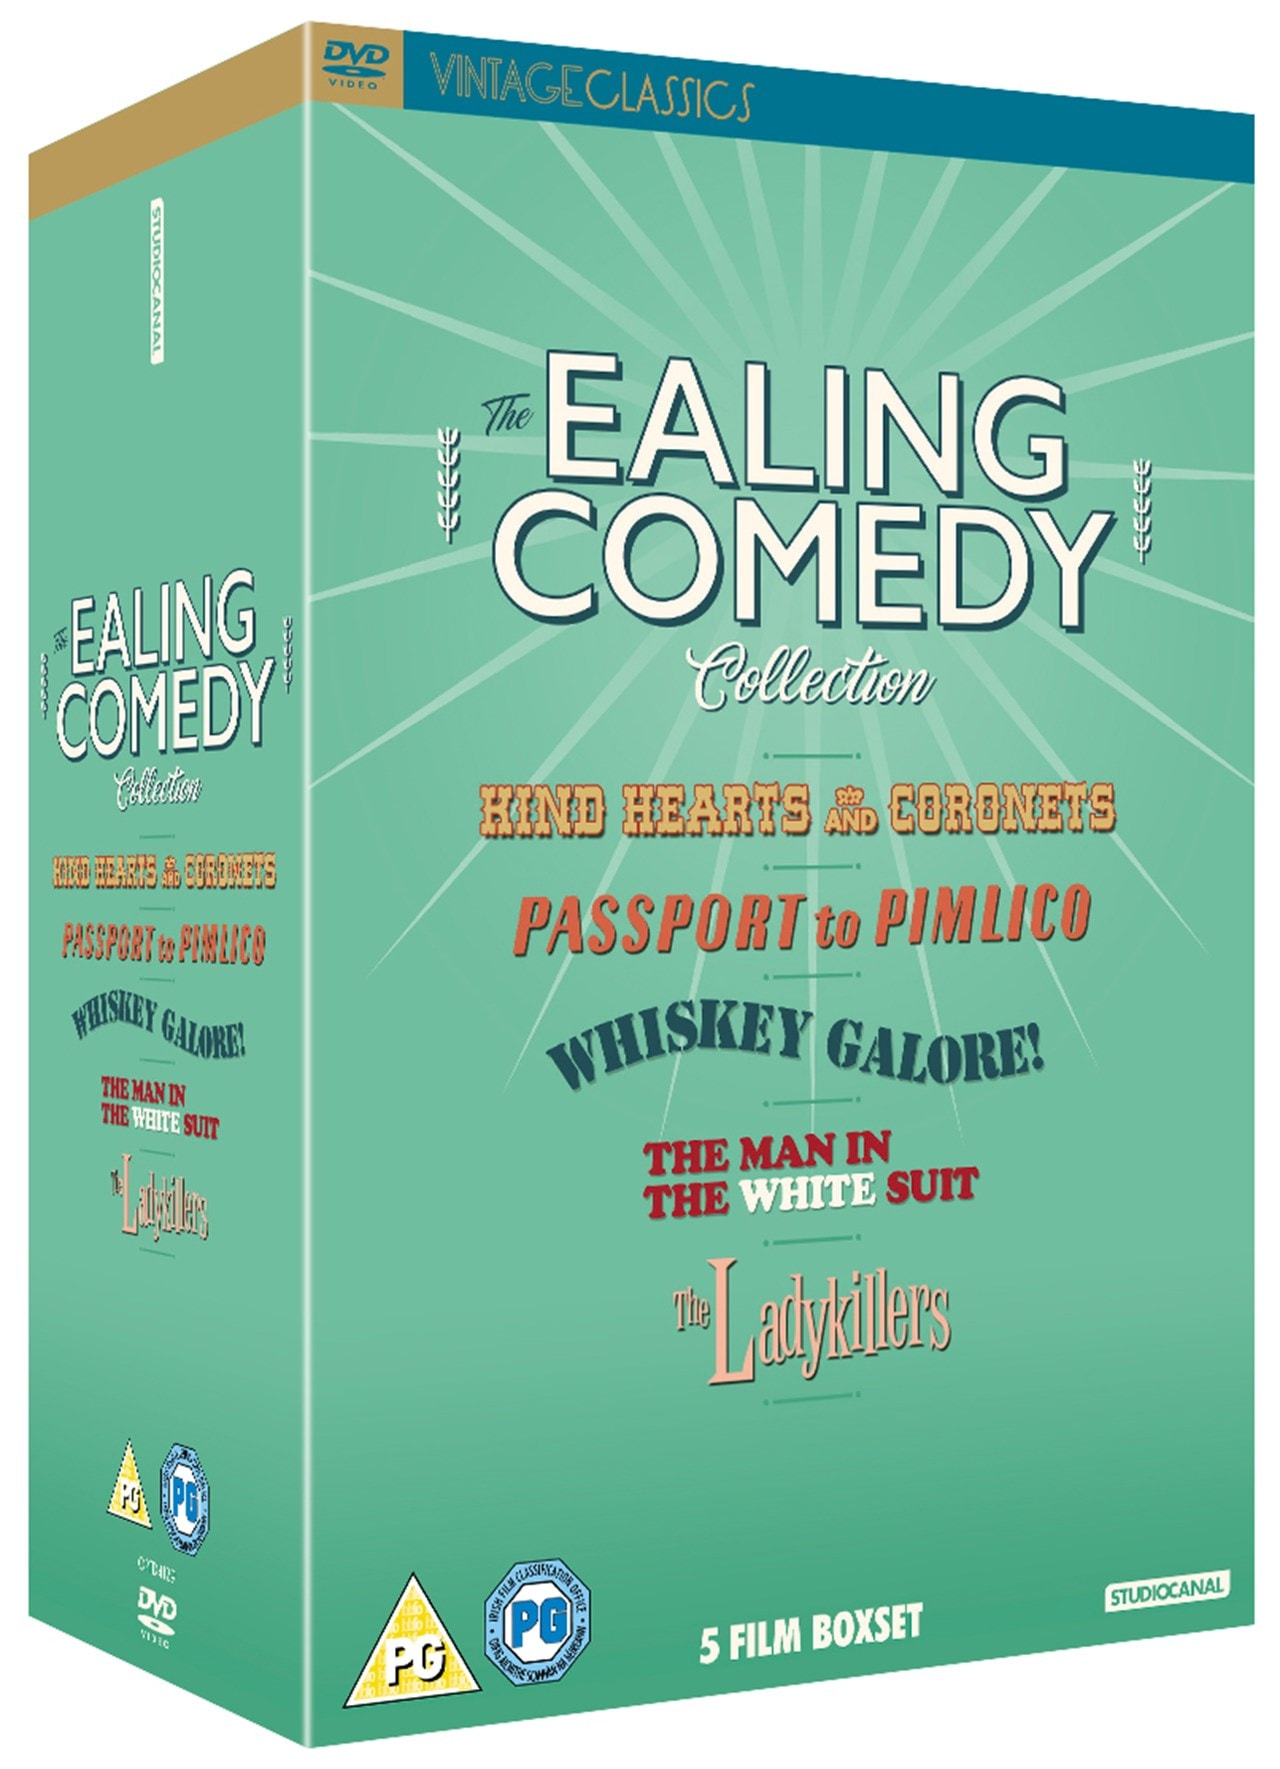 The Ealing Comedy Collection - 2